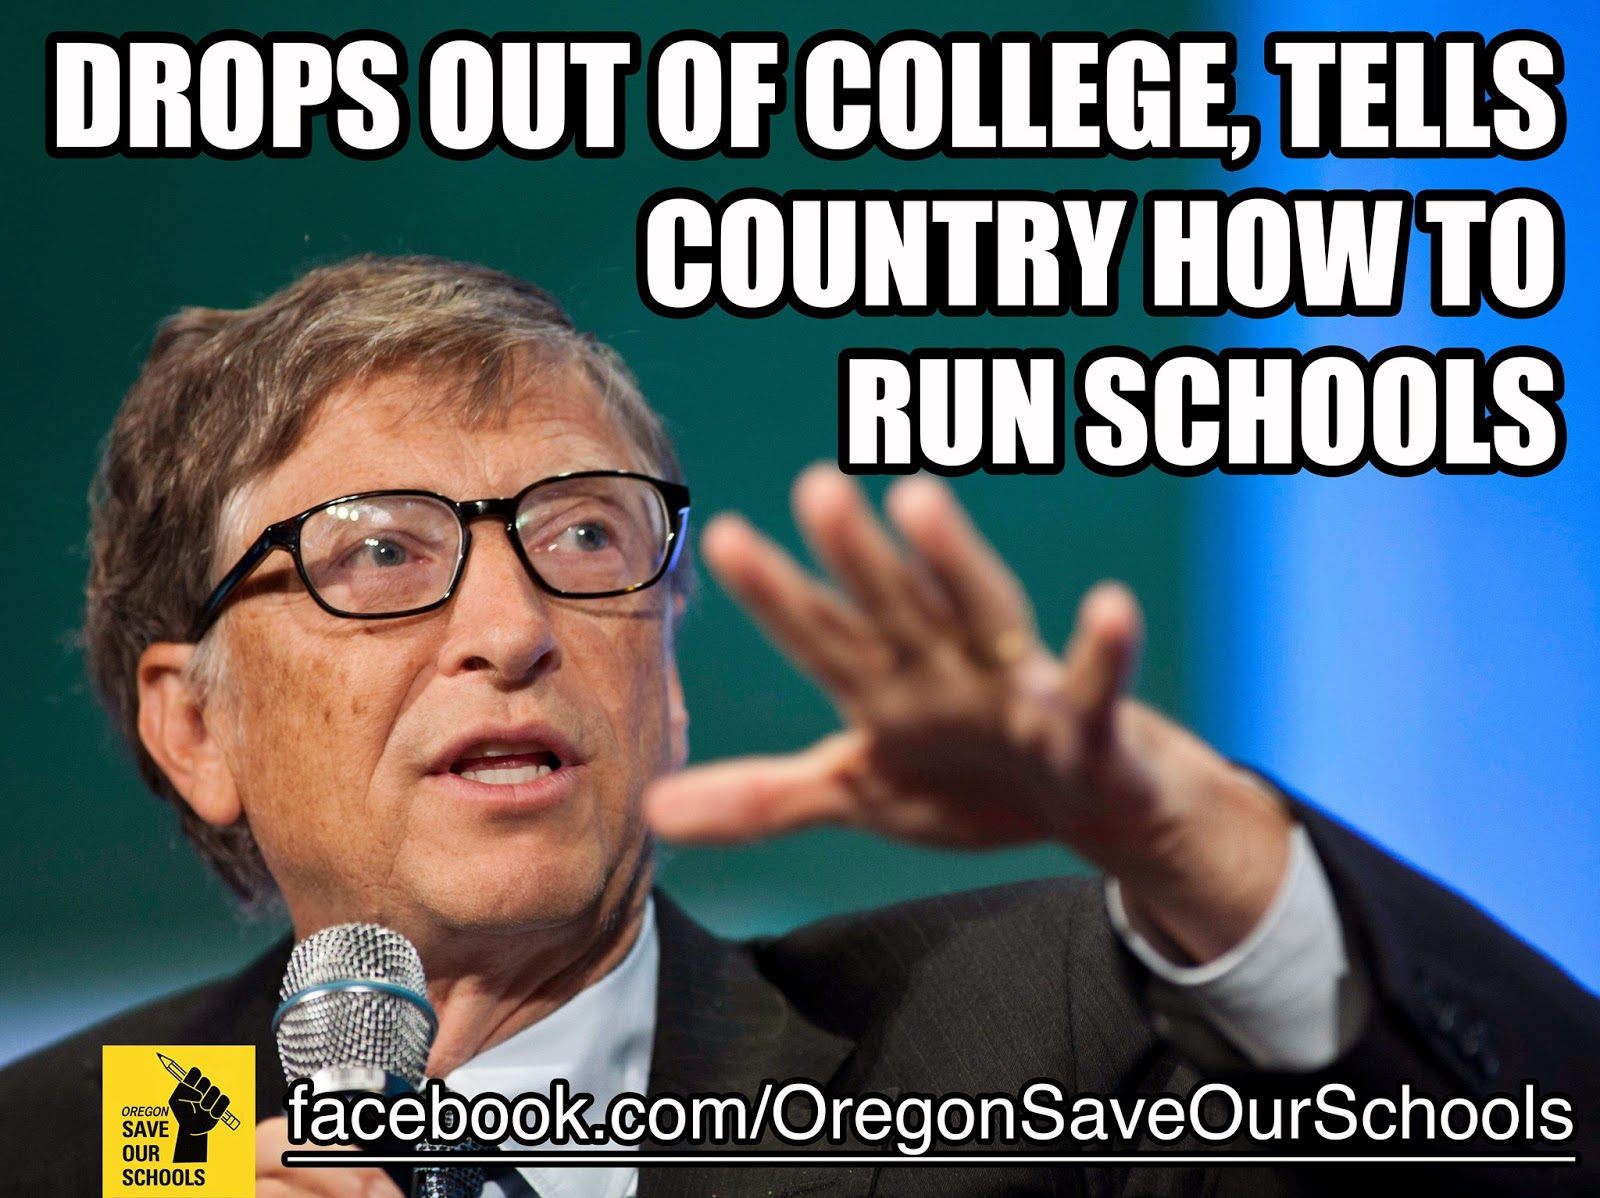 Facebook: Oregon Save Our Schools